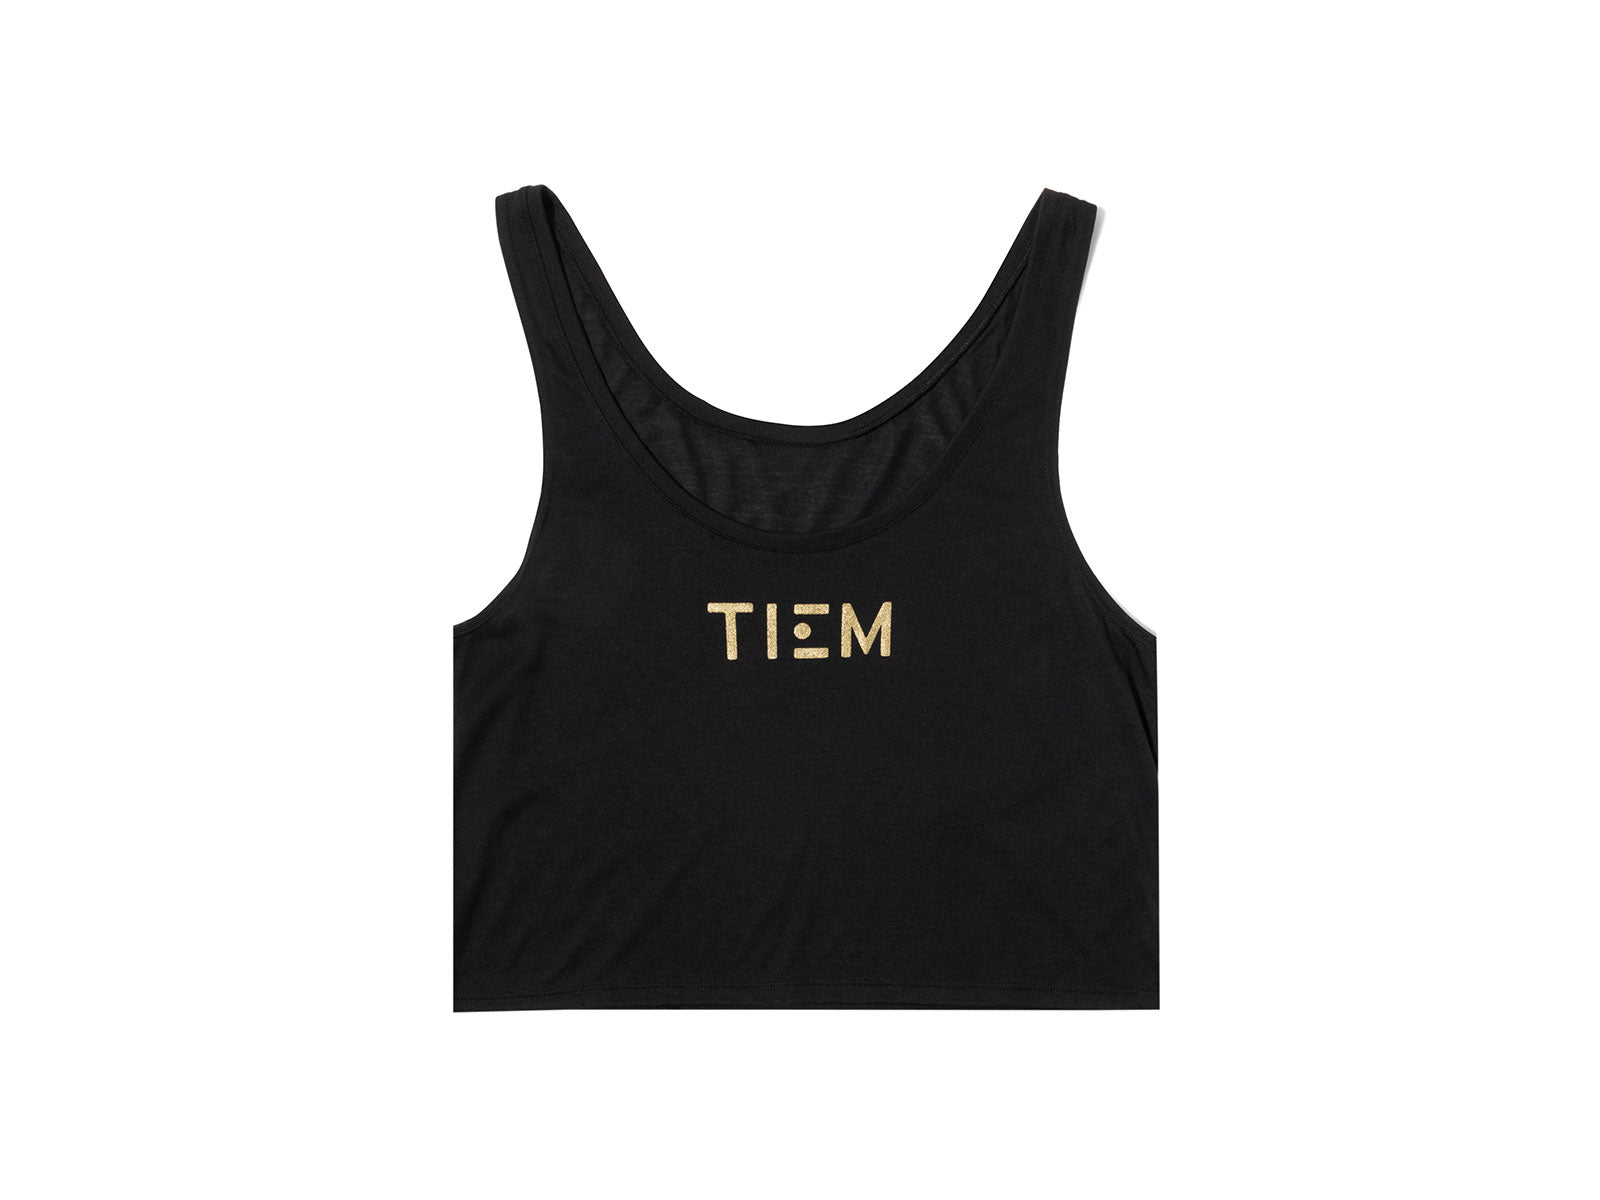 Cropped Tank Top - Black/Gold